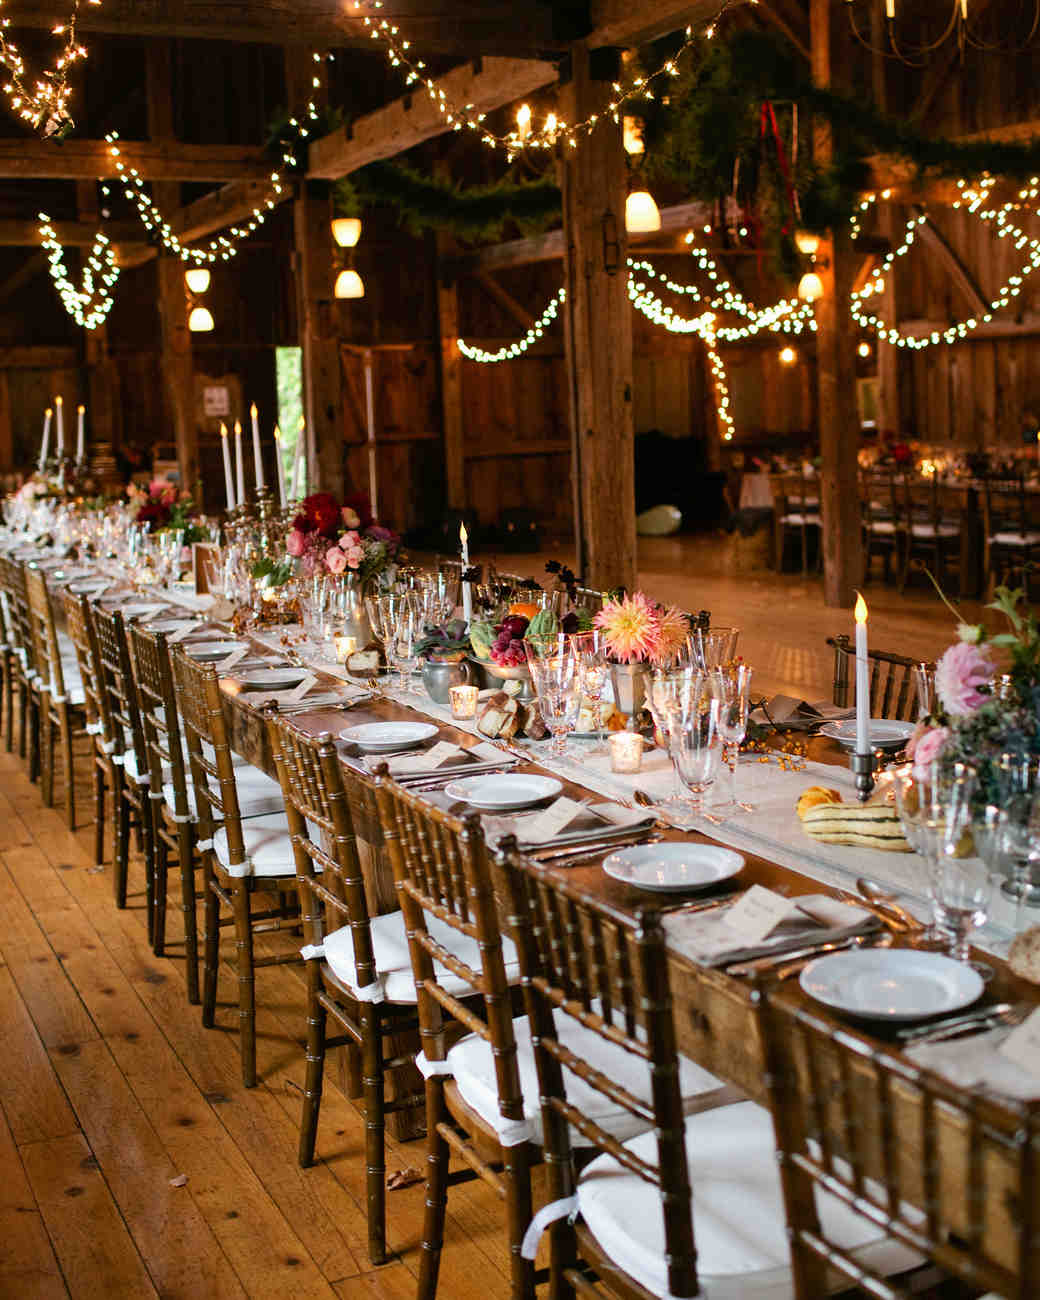 Fall Barn Wedding Ideas: A Rustic Fall Barn Wedding In Maine